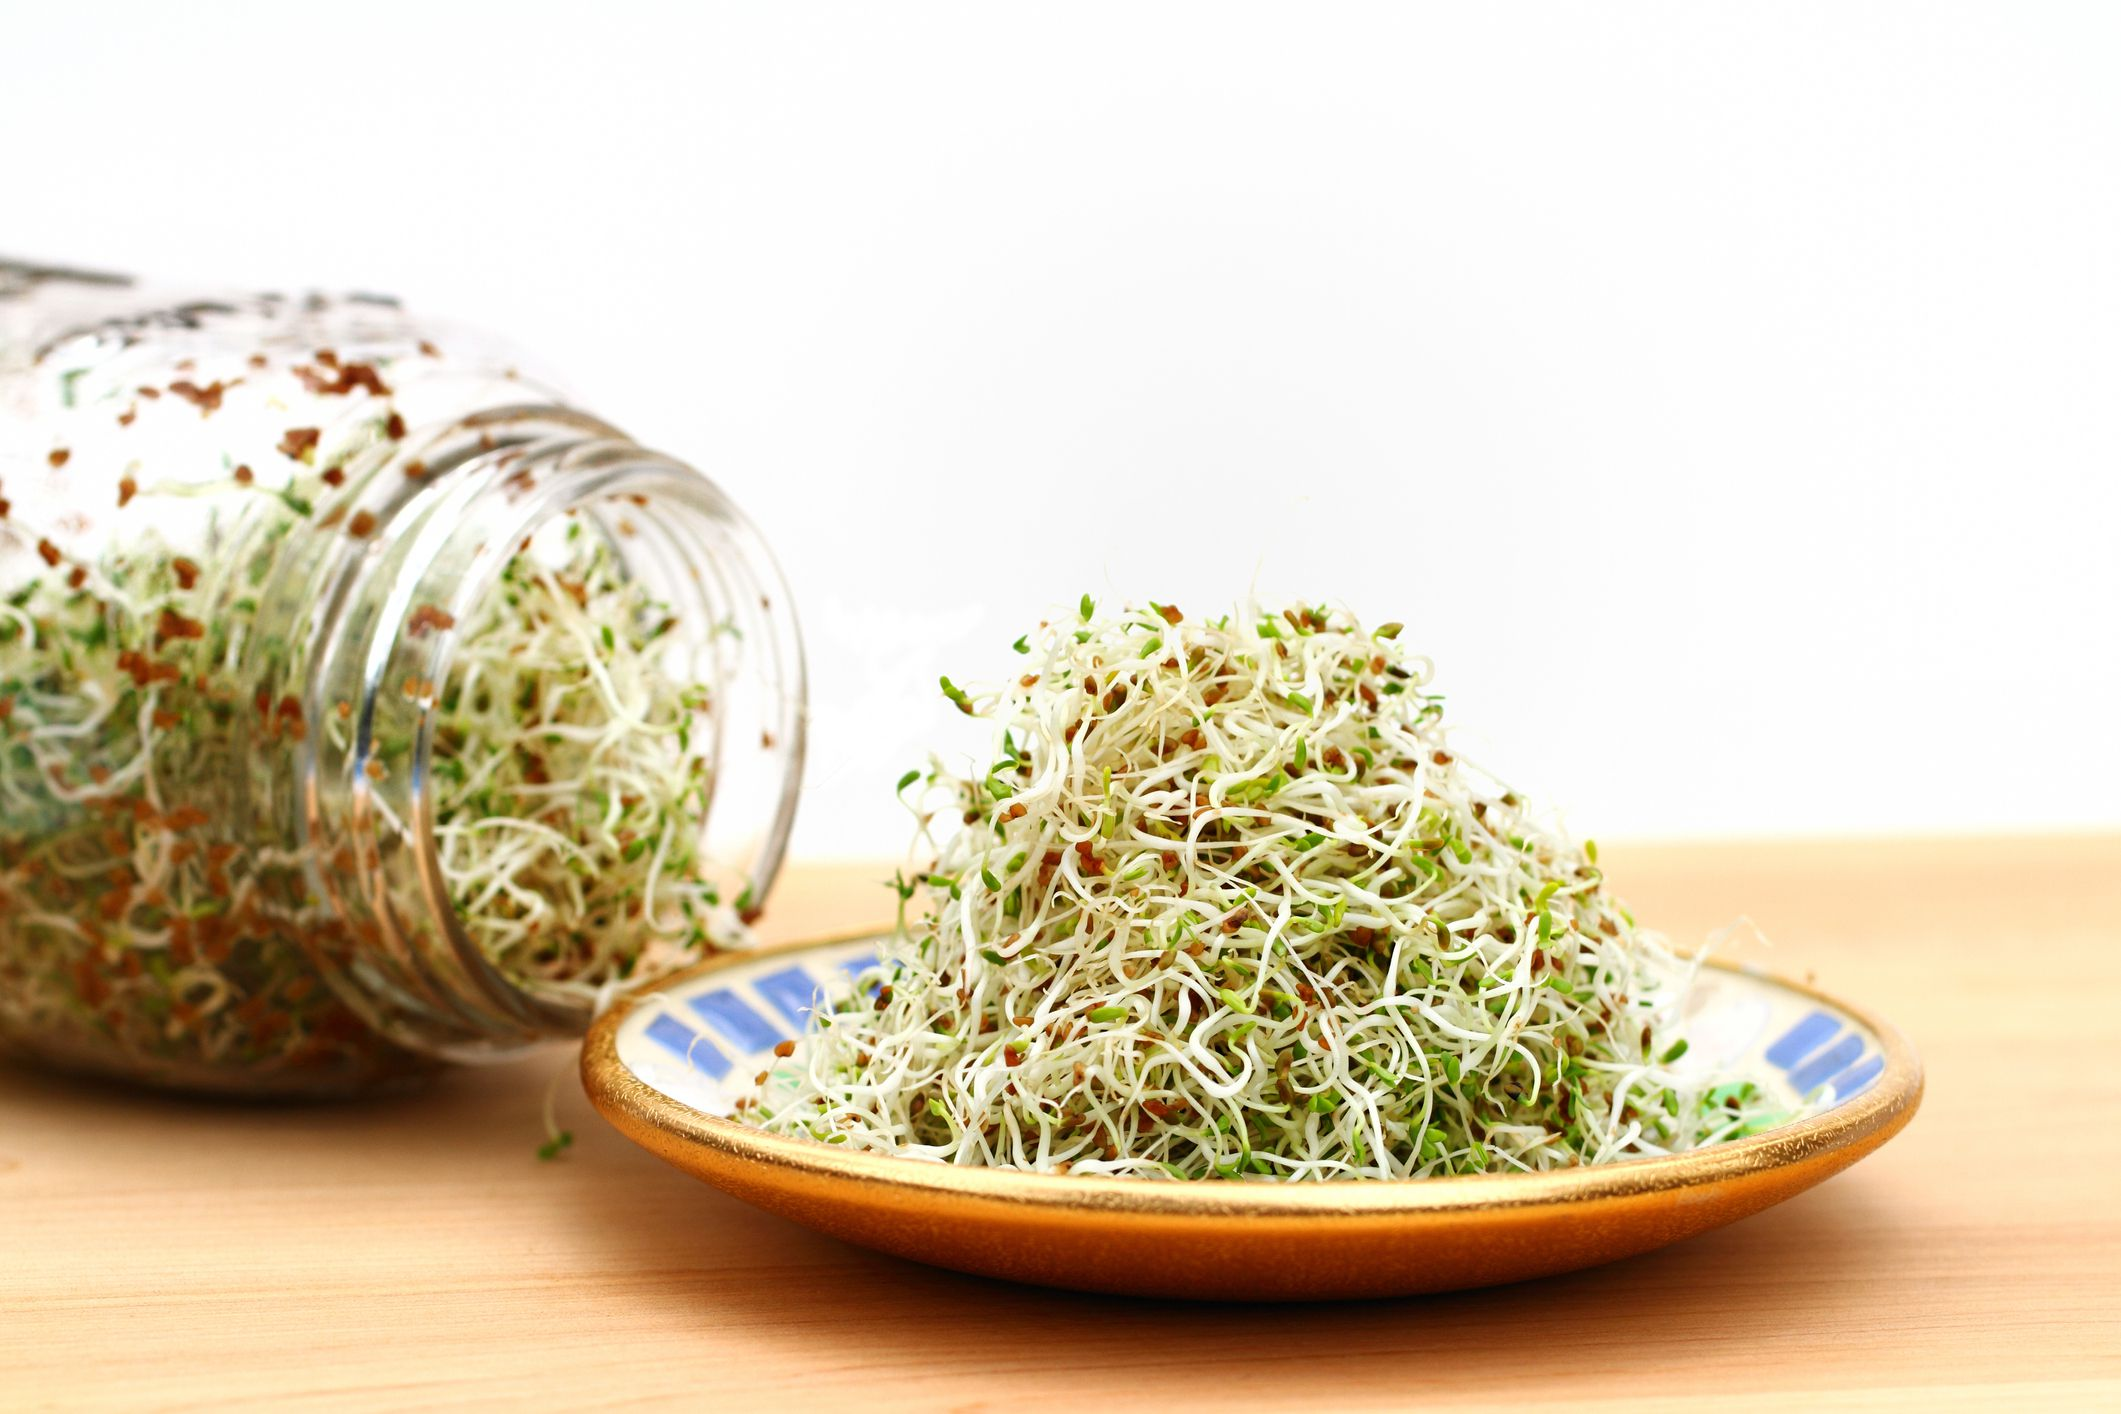 Grow Your Own Sprouts in a Jar